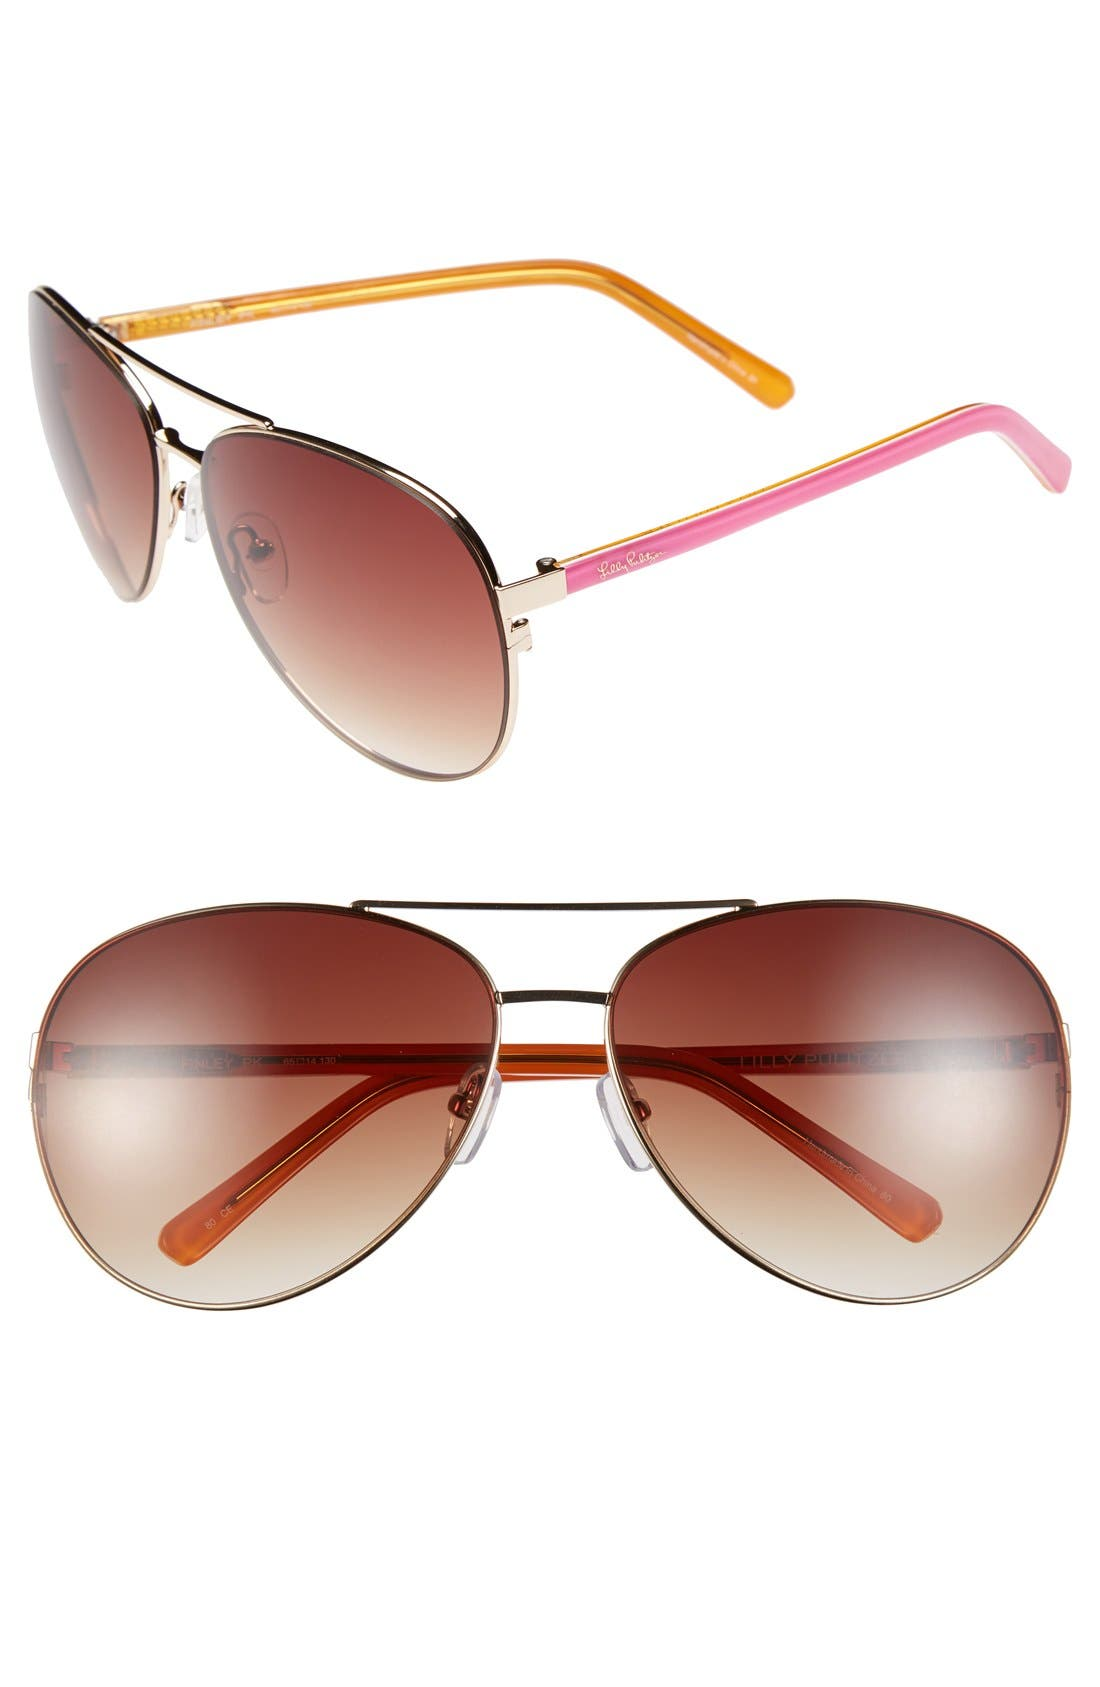 Main Image - Lilly Pulitzer® 'Finley' 65mm Aviator Sunglasses